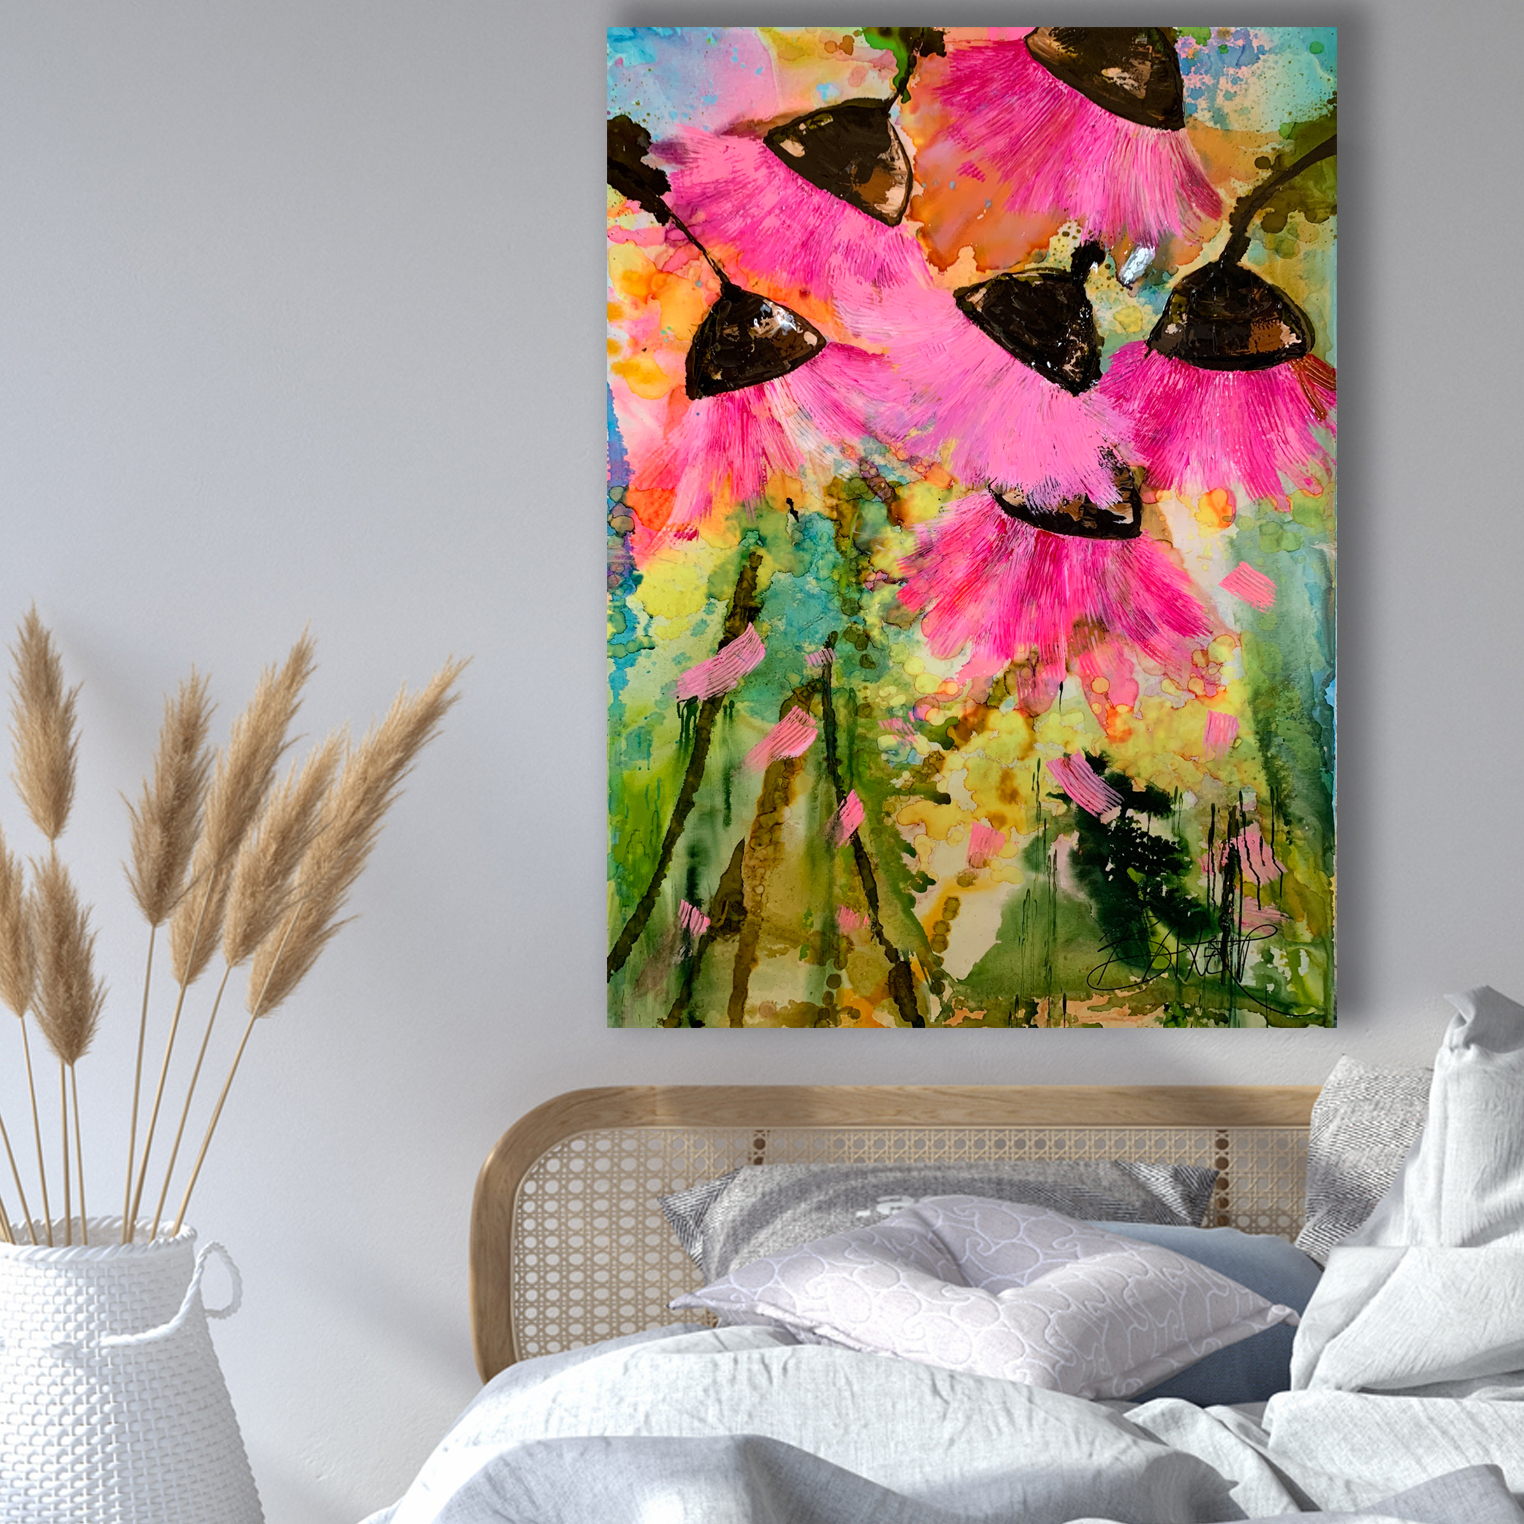 Abstract Floral Paintings Buy Gum Nuts by Australian Artists Nicole Baker & Jessica Skye Baker